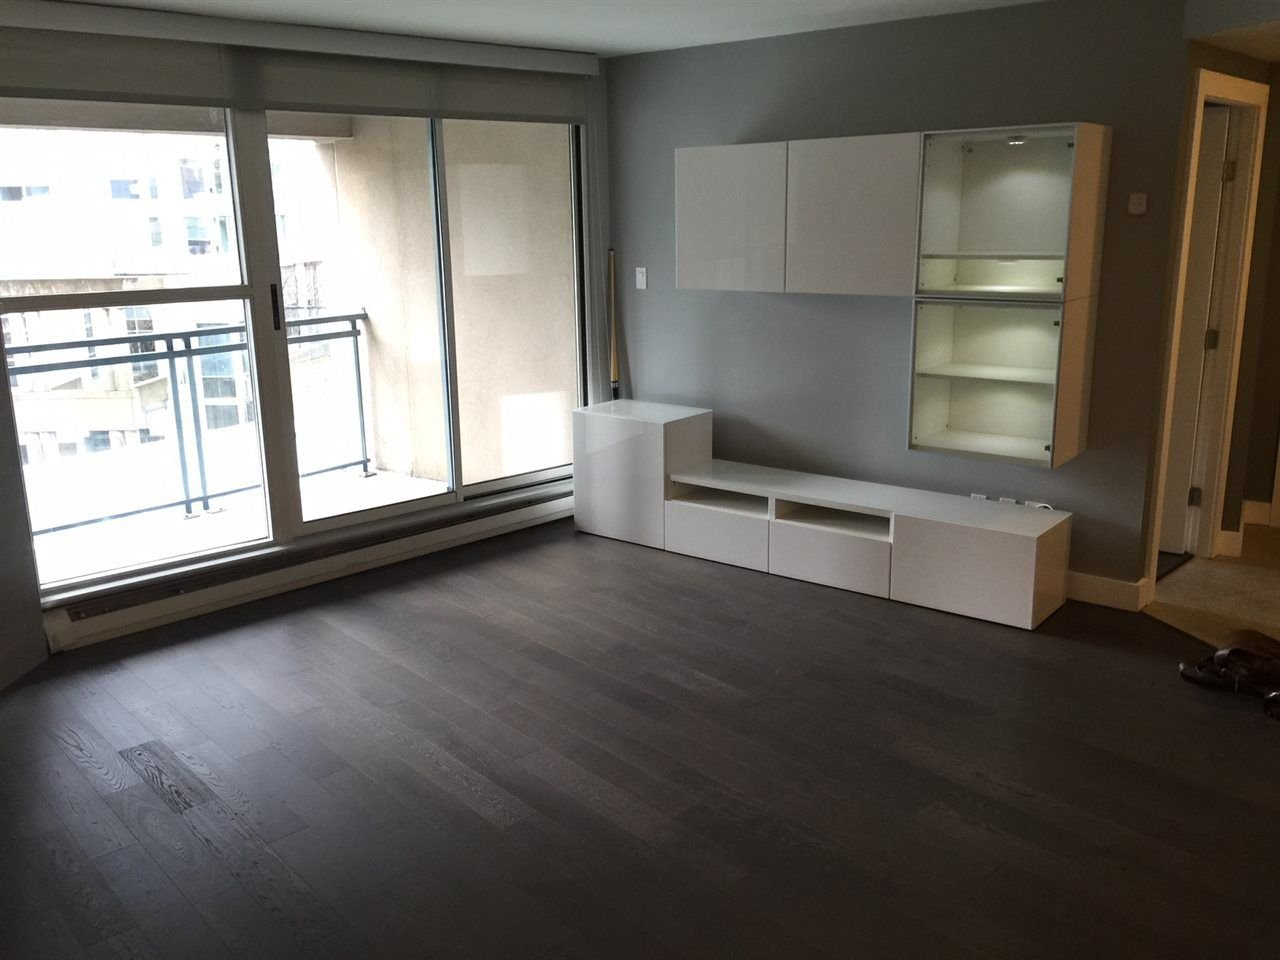 """Photo 17: Photos: 304 183 KEEFER Place in Vancouver: Downtown VW Condo for sale in """"PARIS PLACE"""" (Vancouver West)  : MLS®# R2212938"""